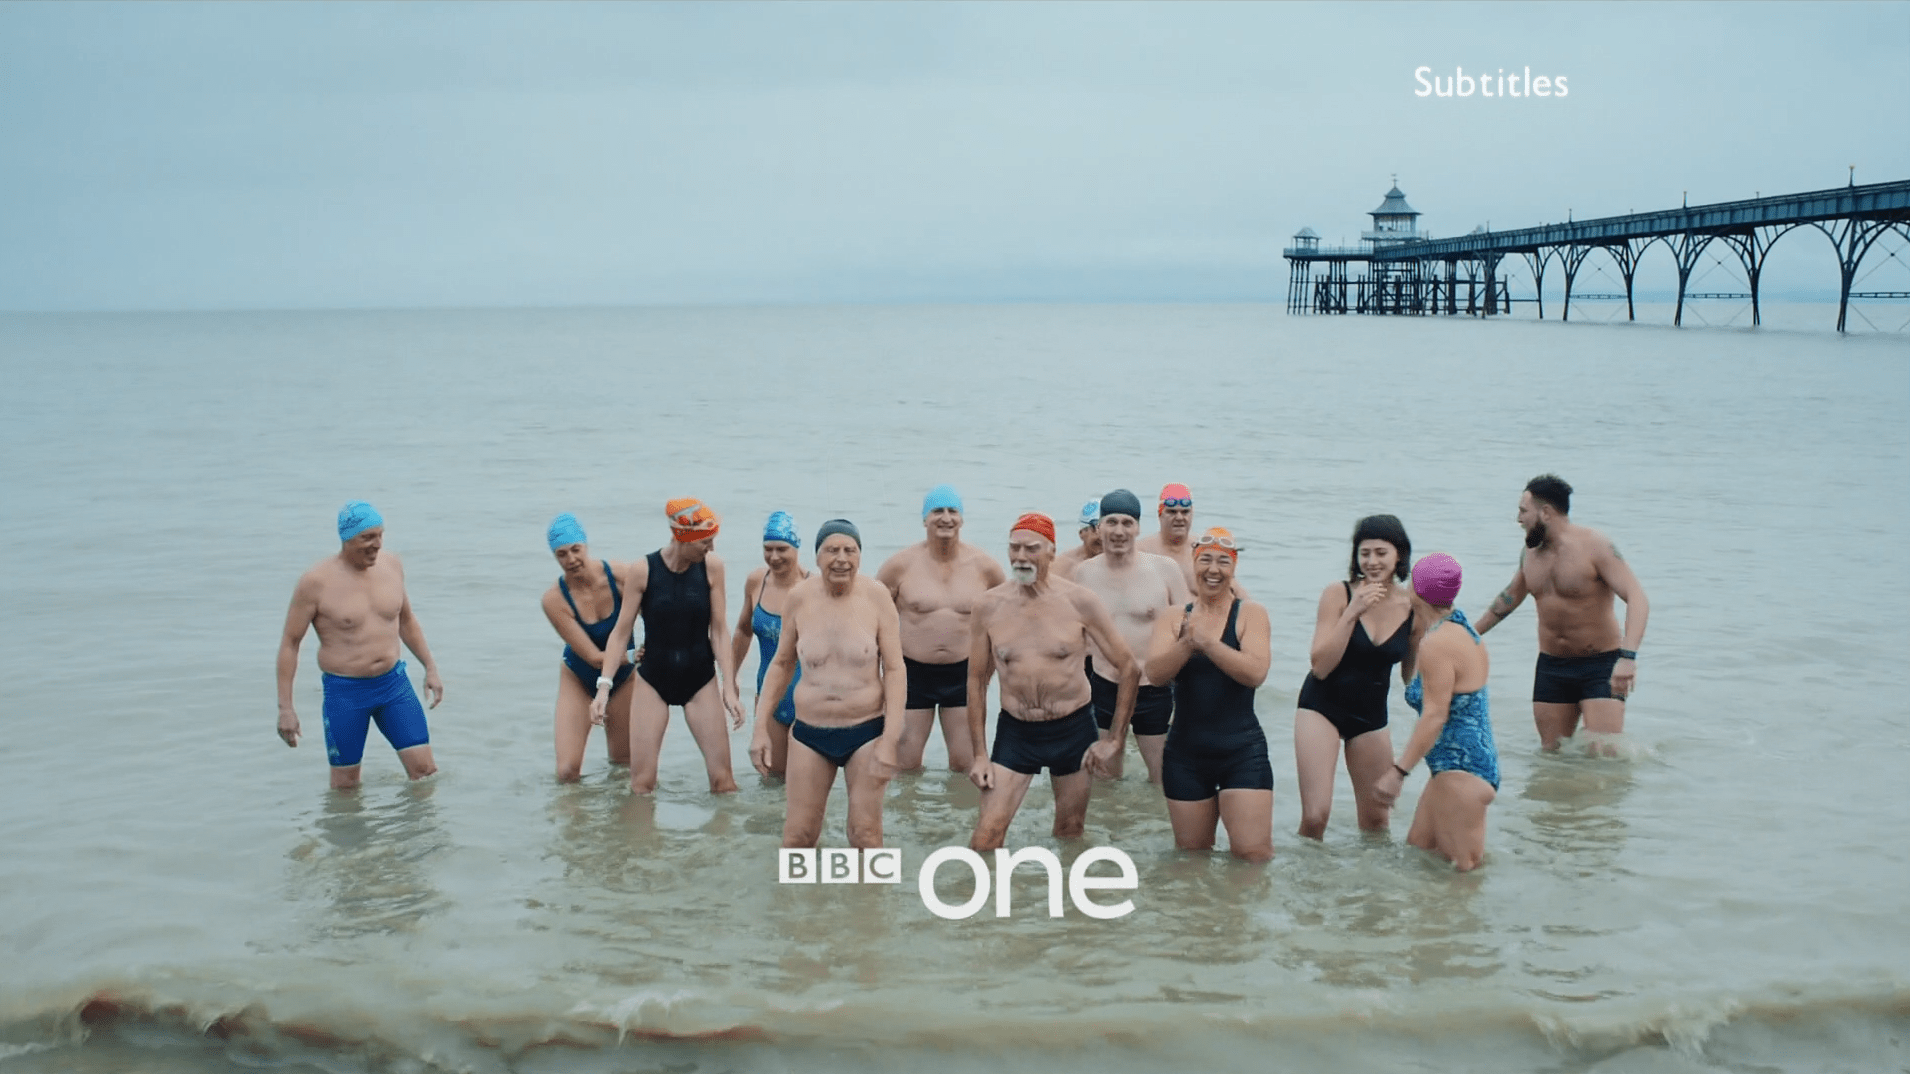 PICTURED: BBC One ident - Sea Swimmers, Clevedon.